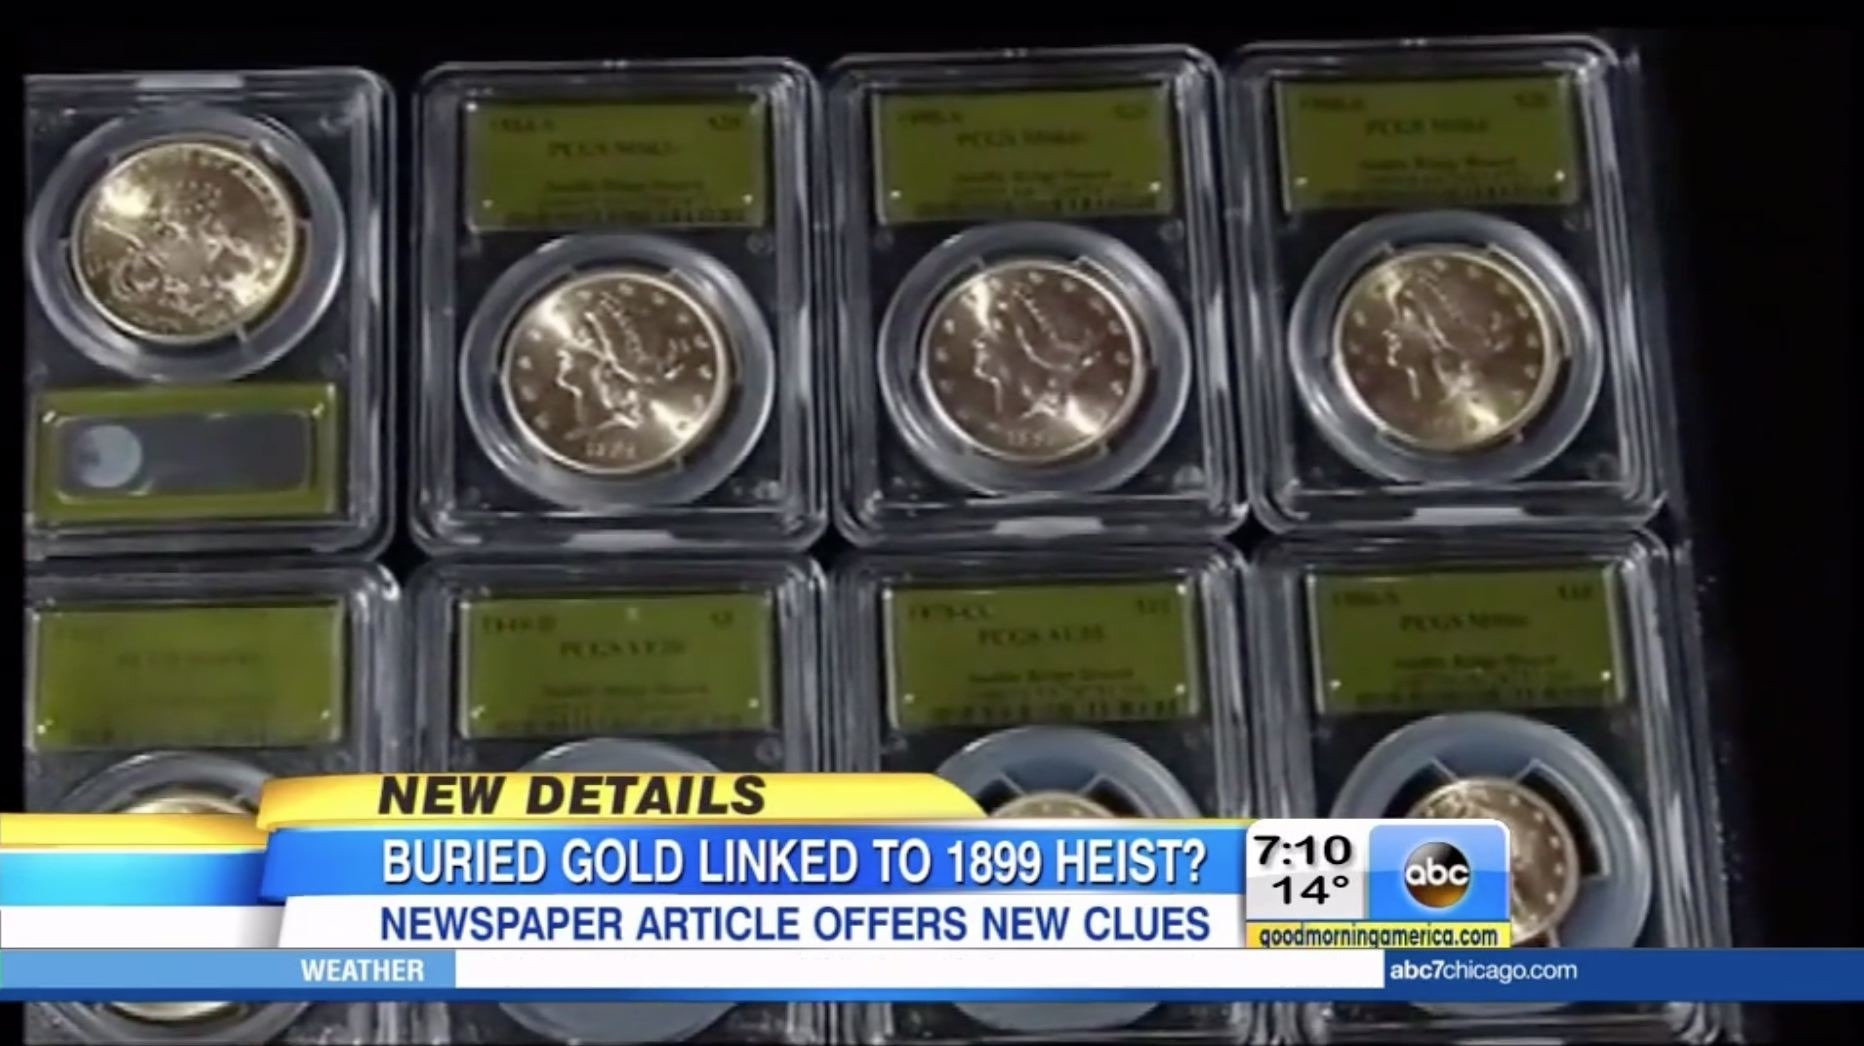 10m in gold coins found in yard might be linked to 1899 heist